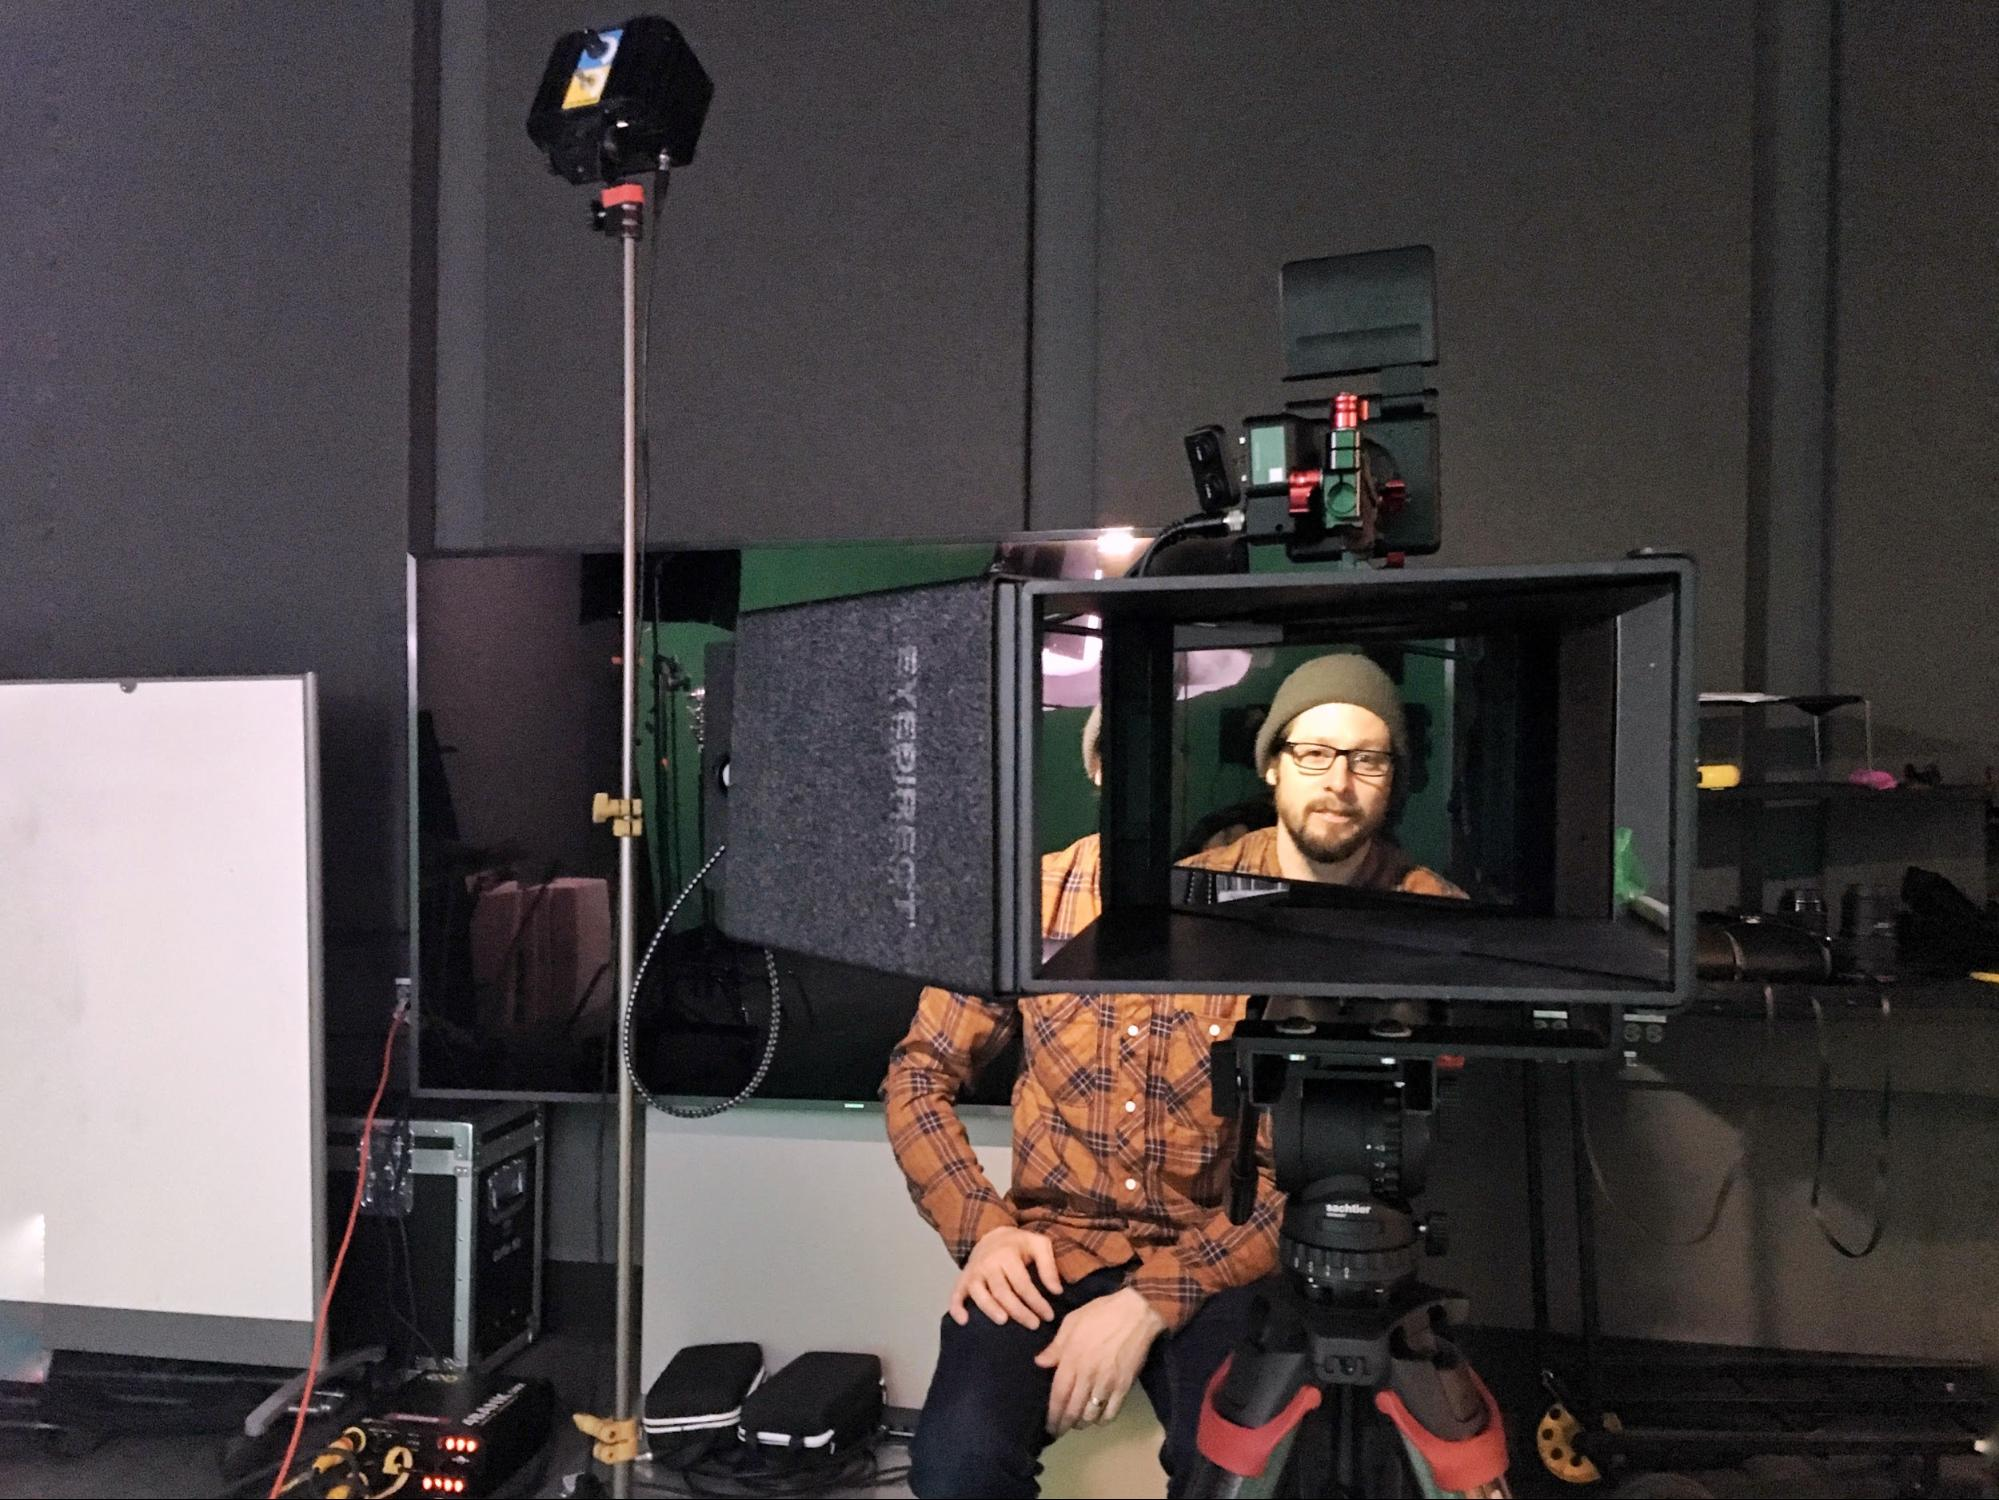 Testing the EyeDirect with Brett Abramsky. Photo credit: Kieran Moreira